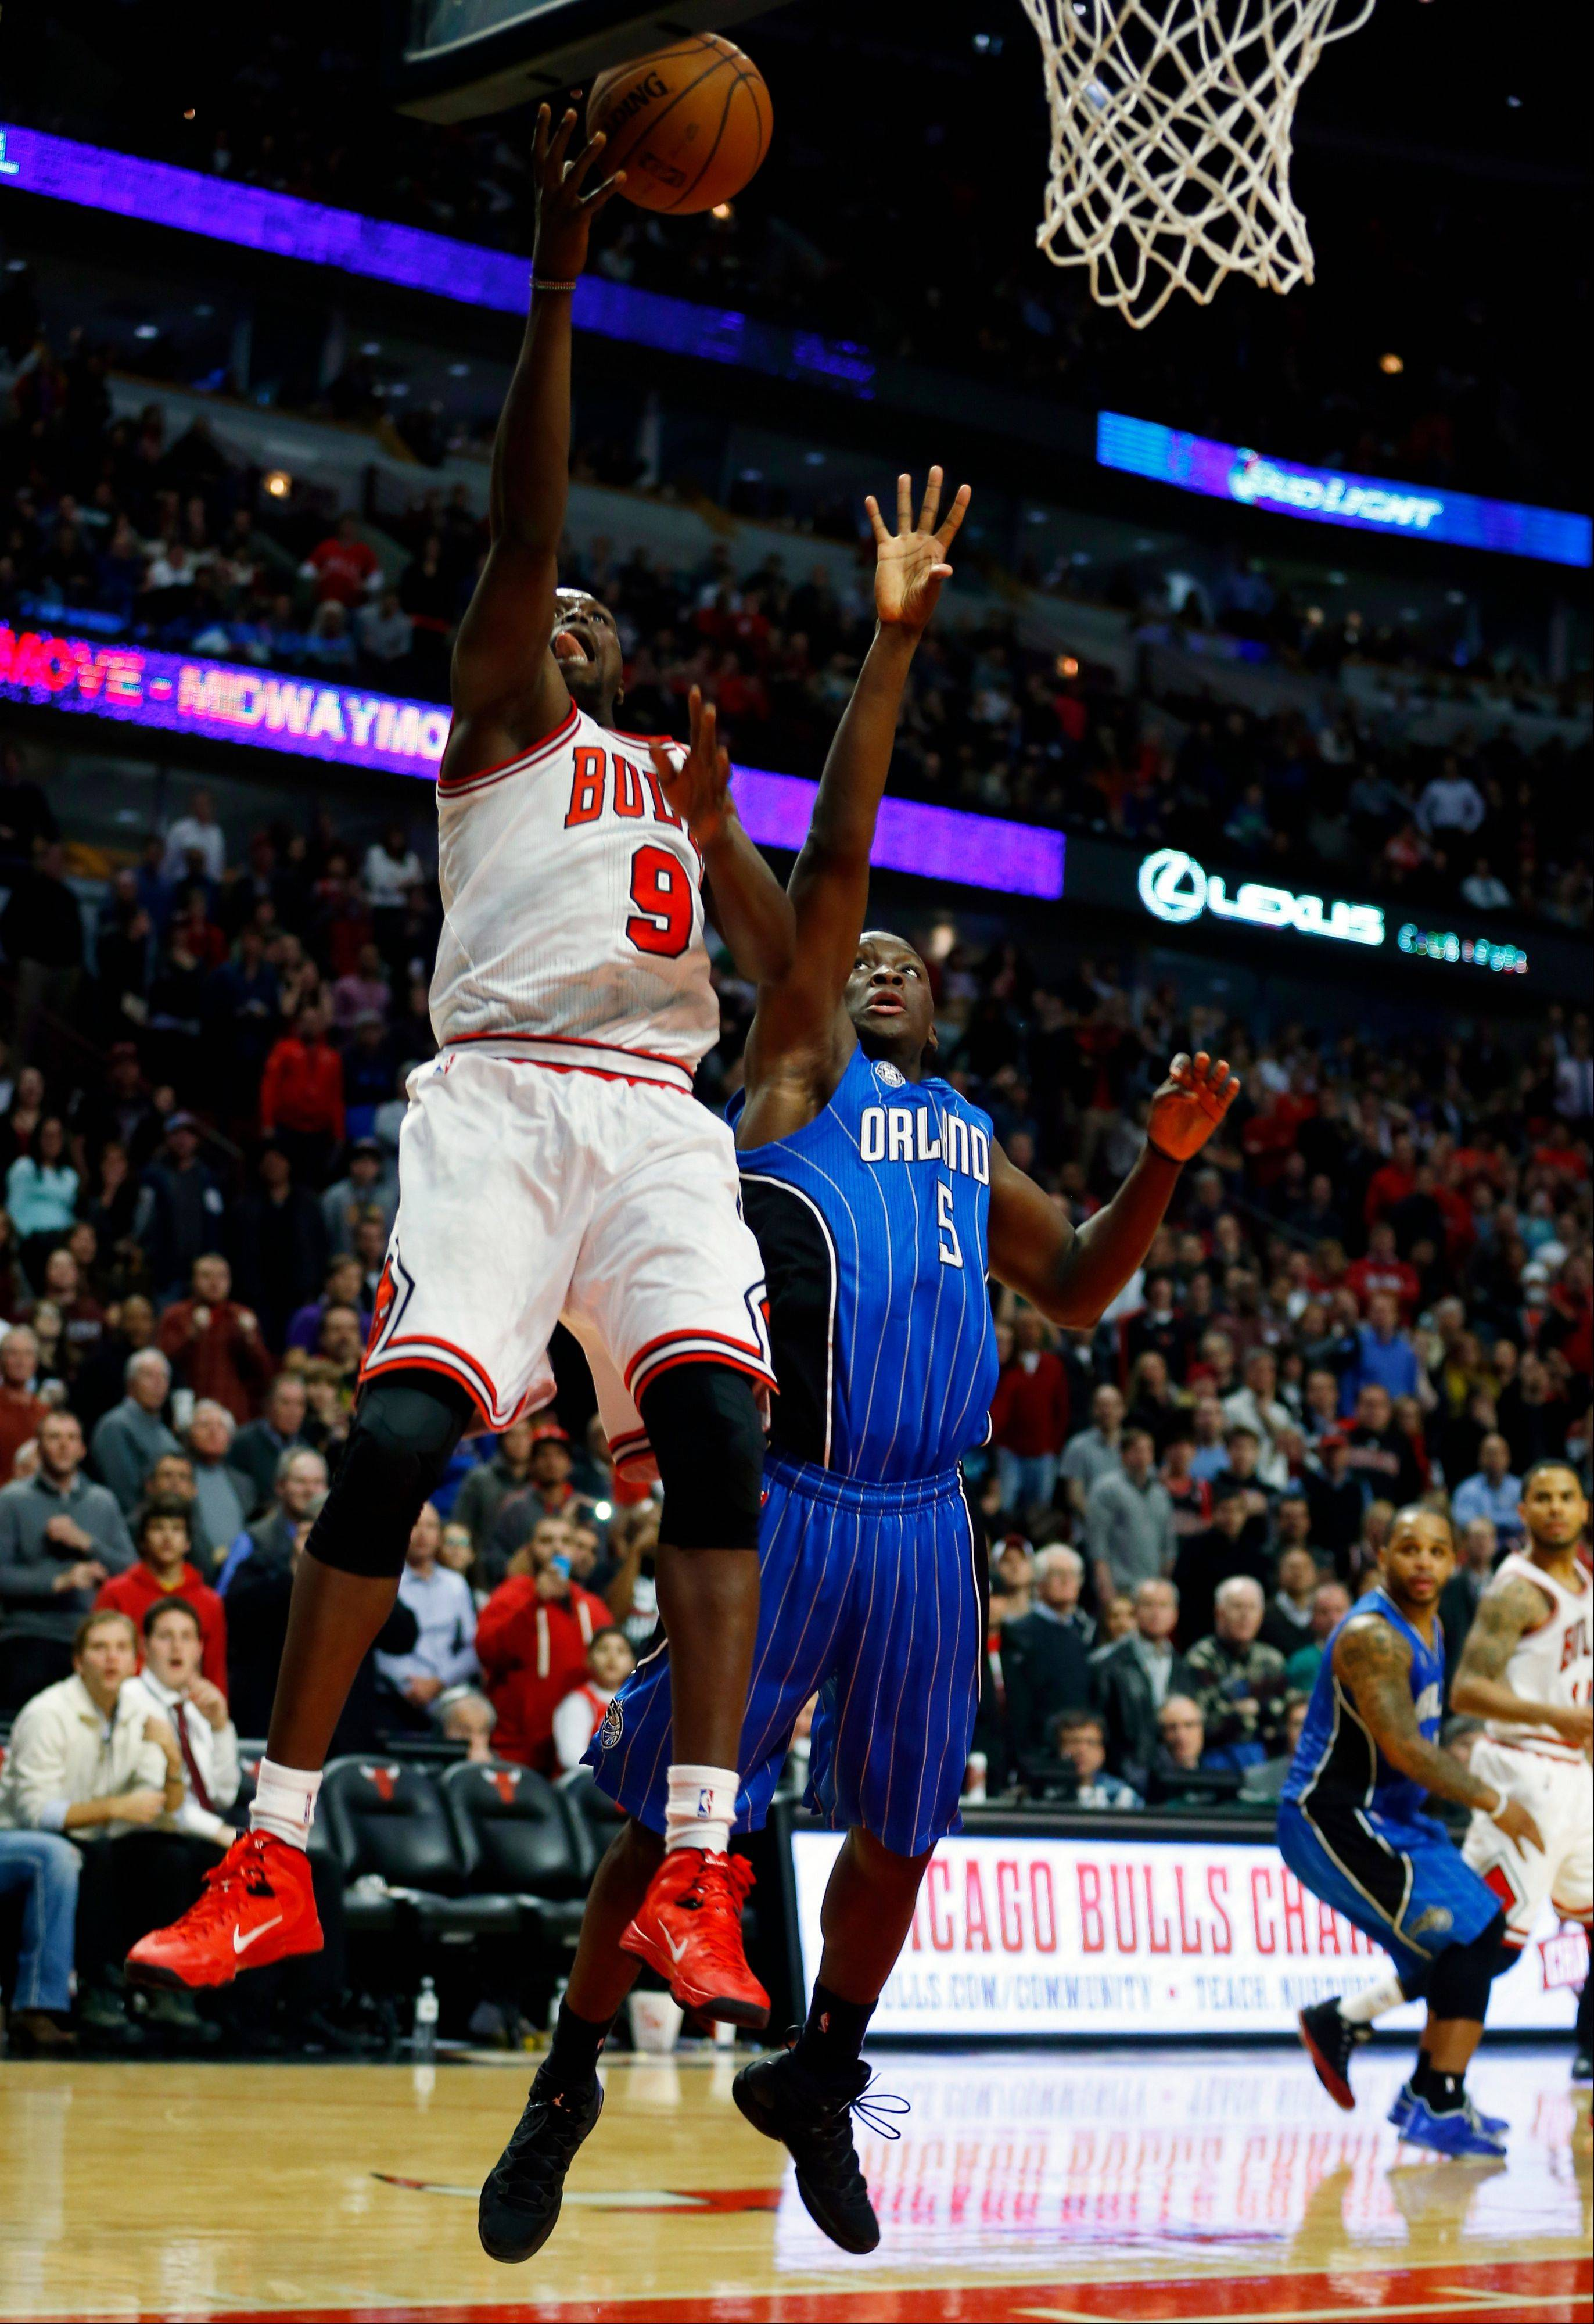 Bulls battle back but can't complete job